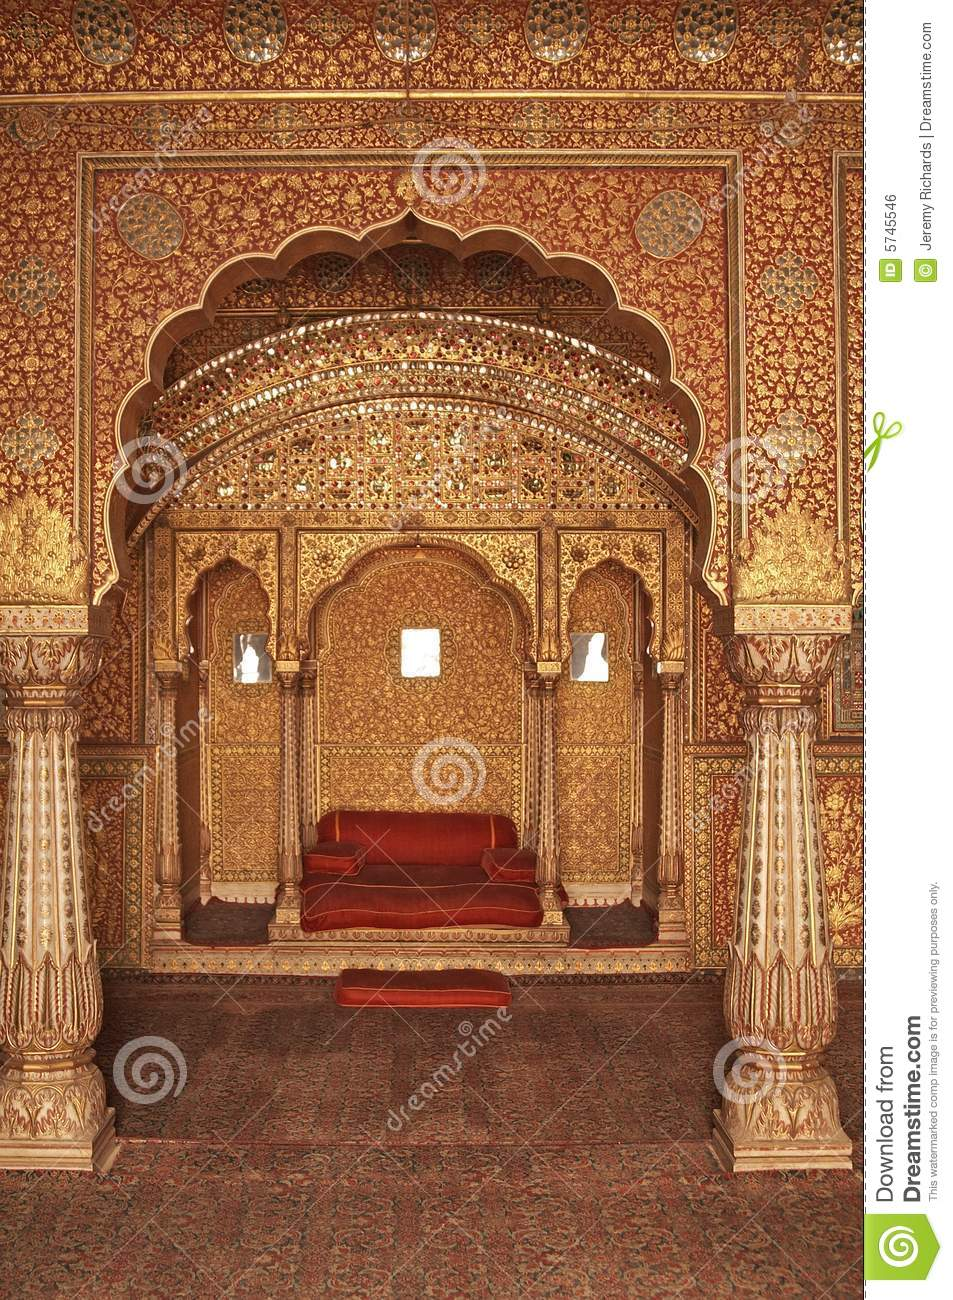 Palaces Rajasthan Images, Stock Photos & Vectors   Shutterstock